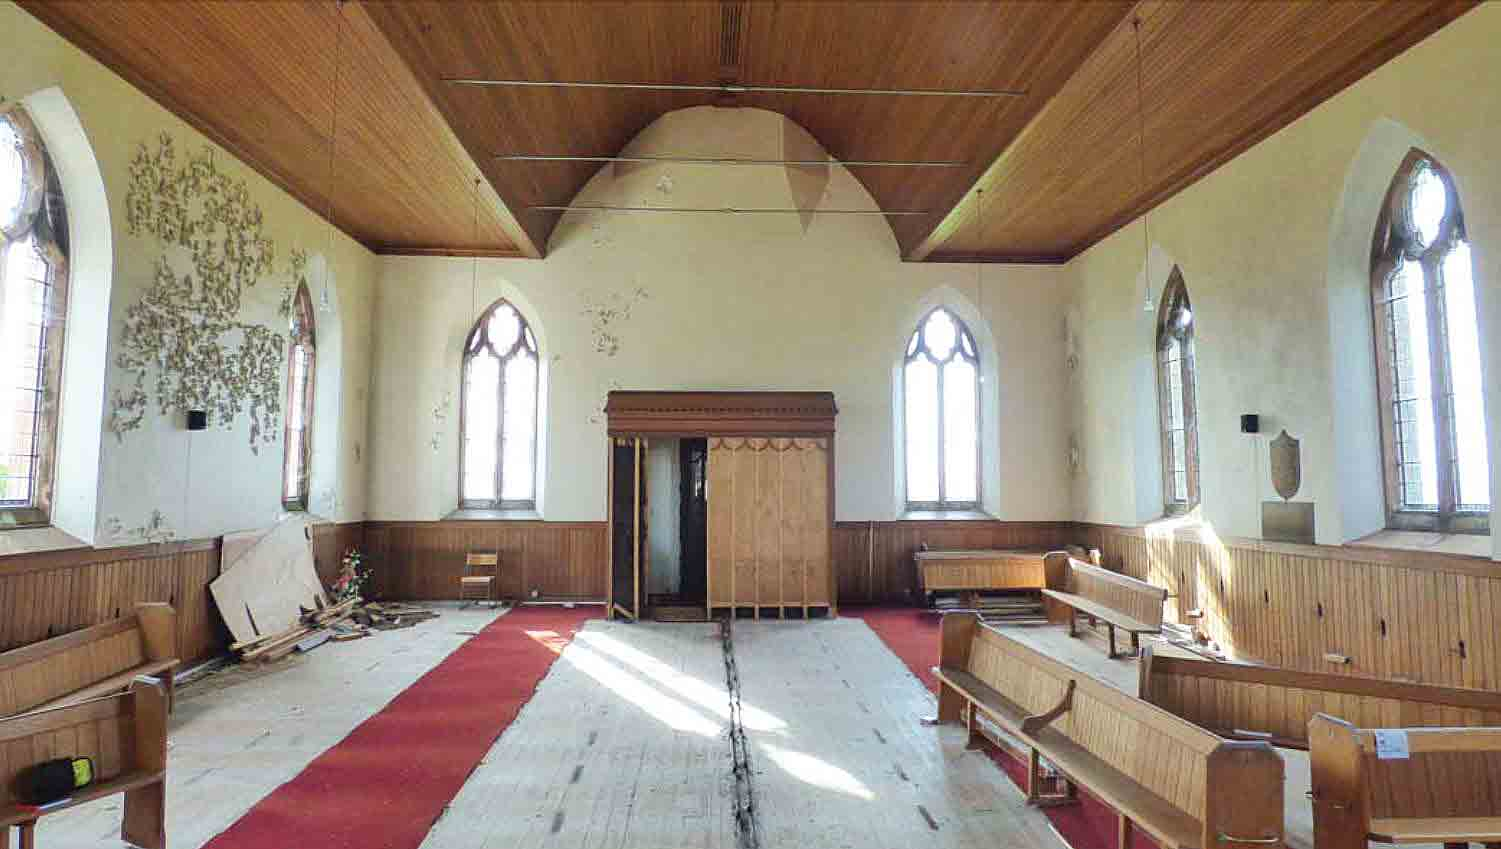 While cosmetic repairs are needed, the structure is in good shape. Image: The Church of Scotland